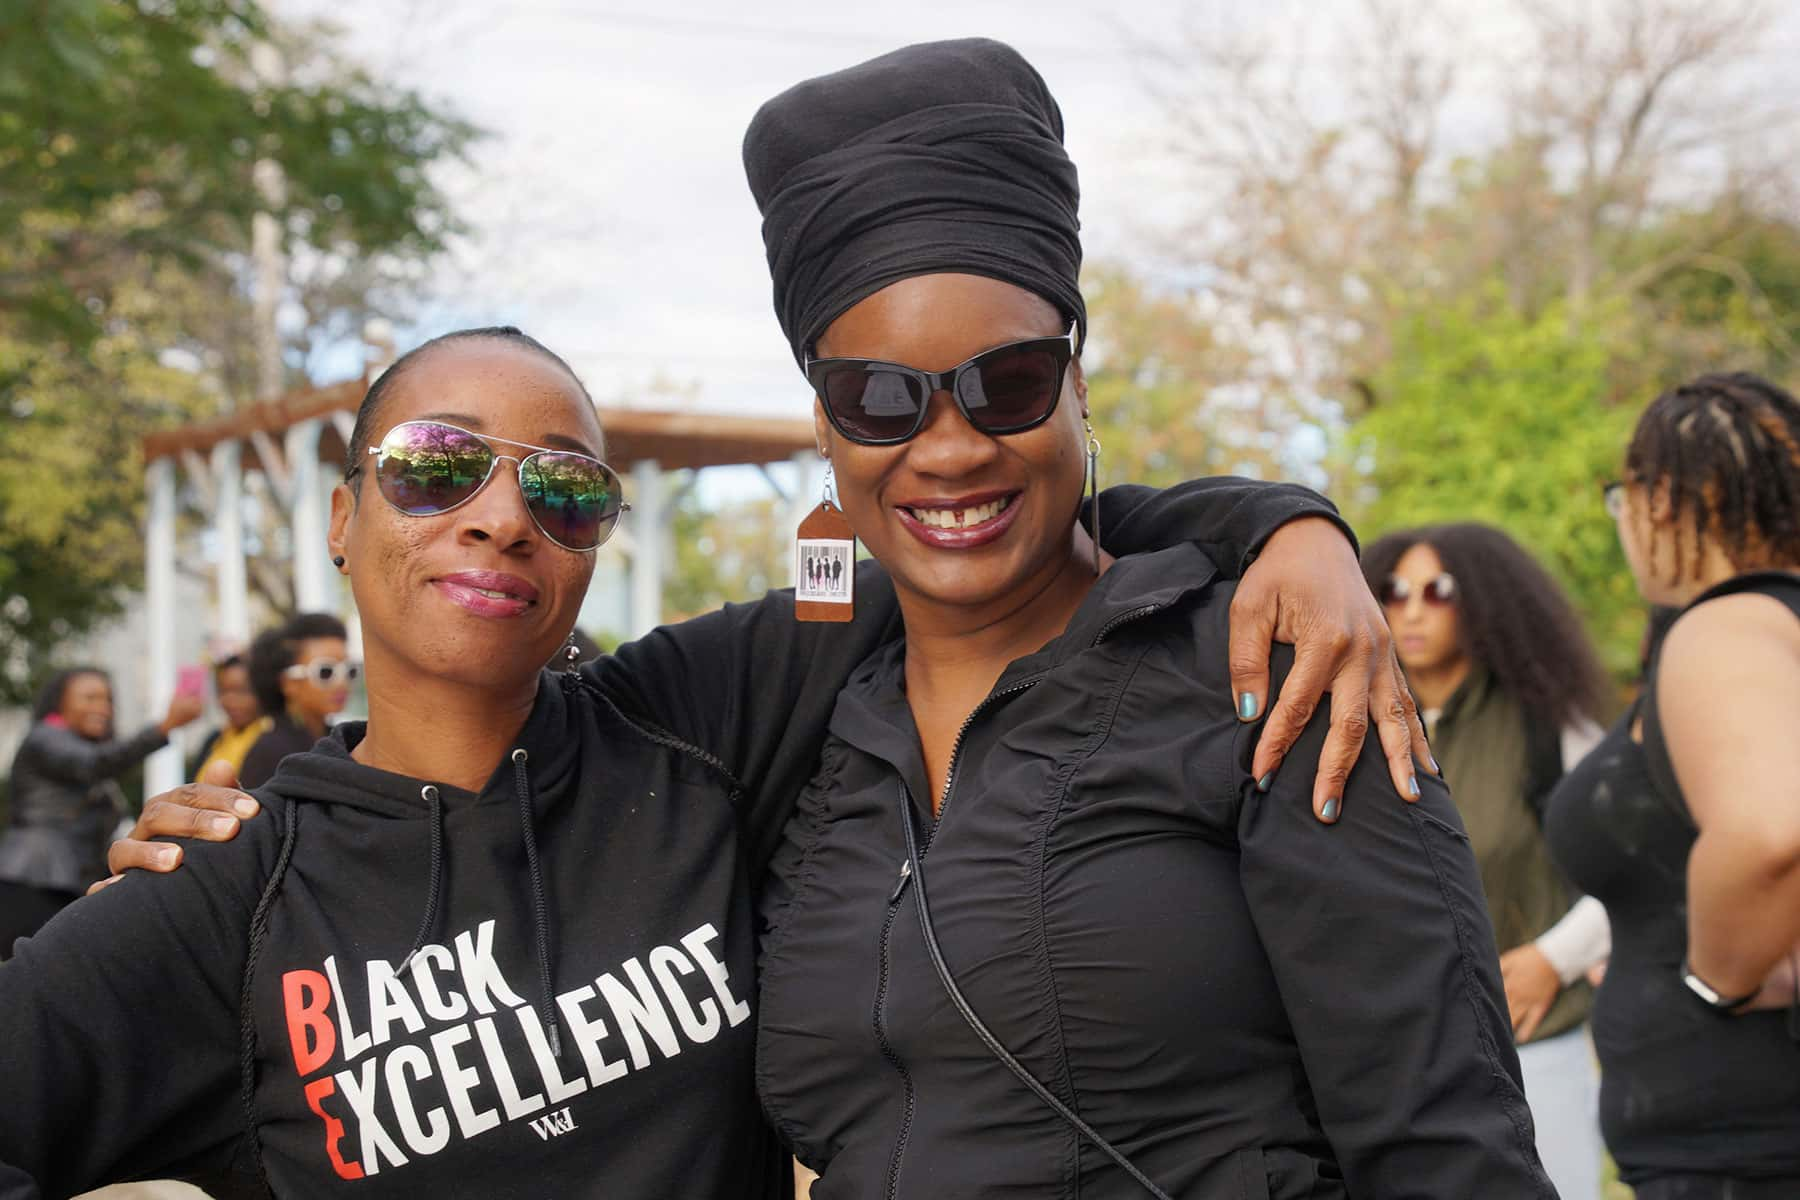 093017_blackempowermarch_0113